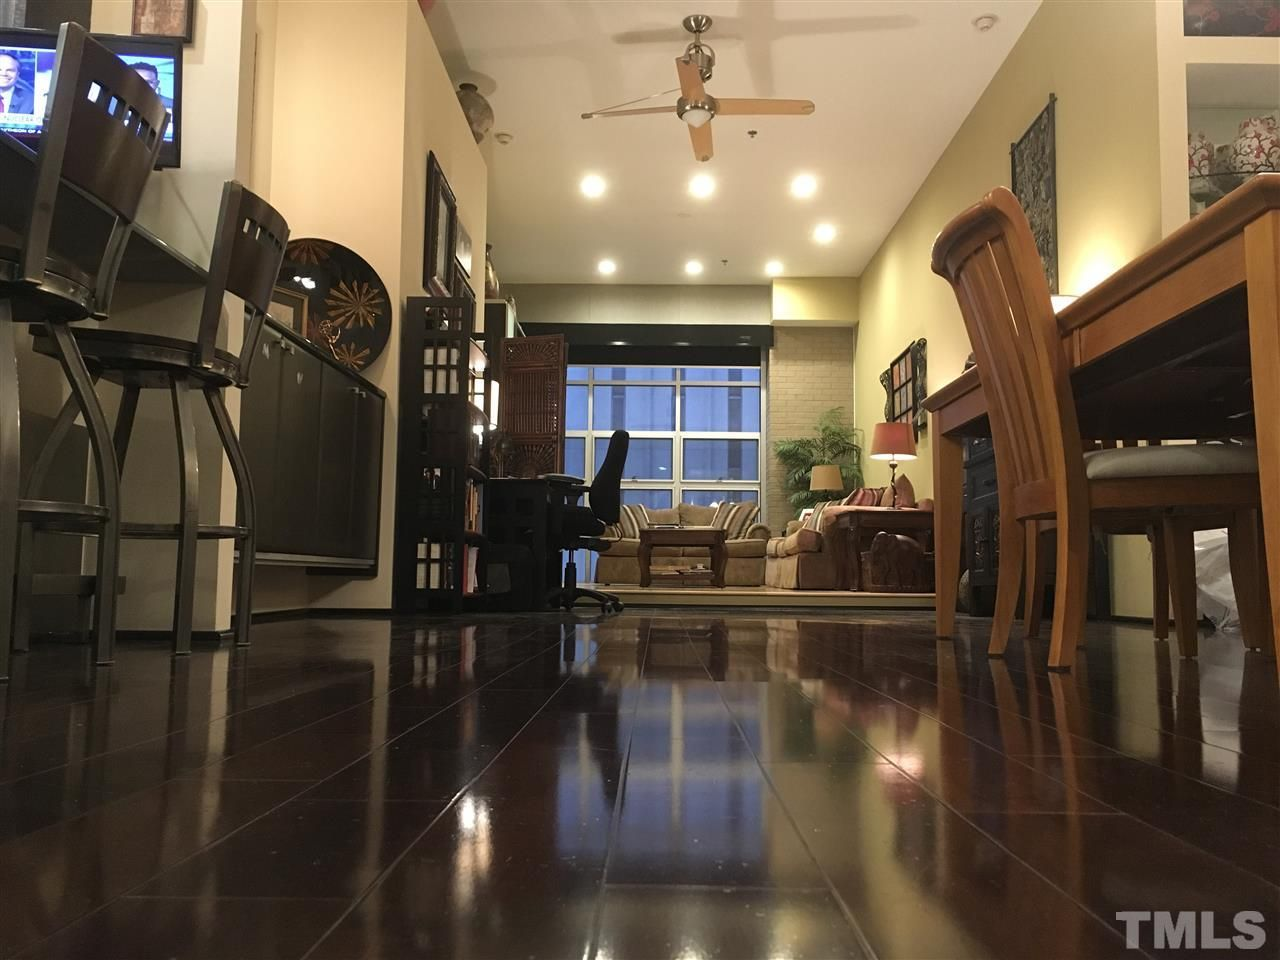 319 Fayetteville St #512, Raleigh, NC 27601 - Recently Sold | Trulia